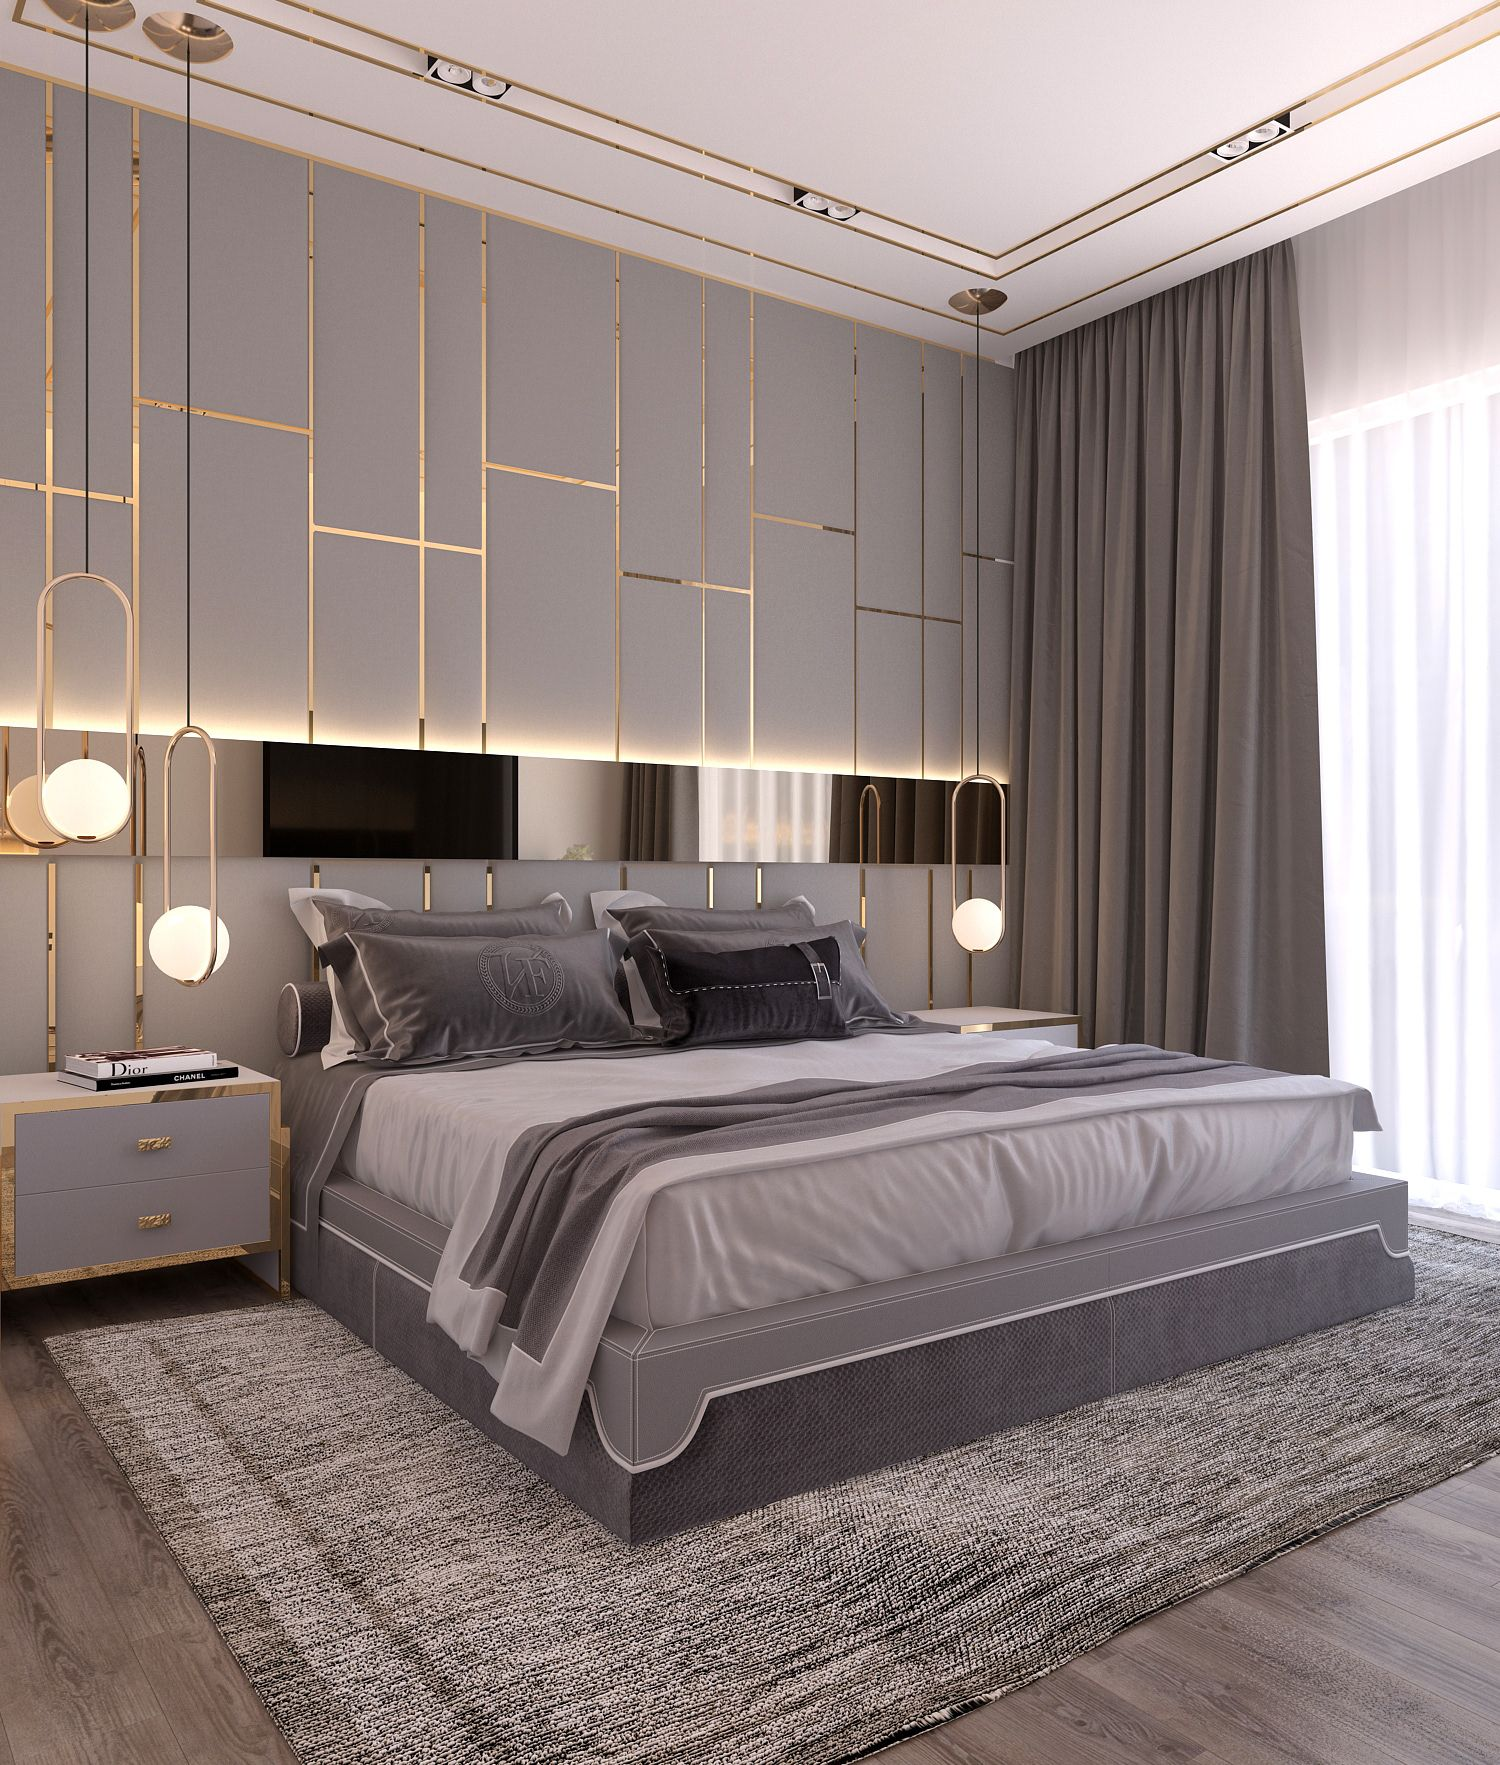 Simple Home Interior Design: Modern Style Bedroom *Dubai Project On Behance